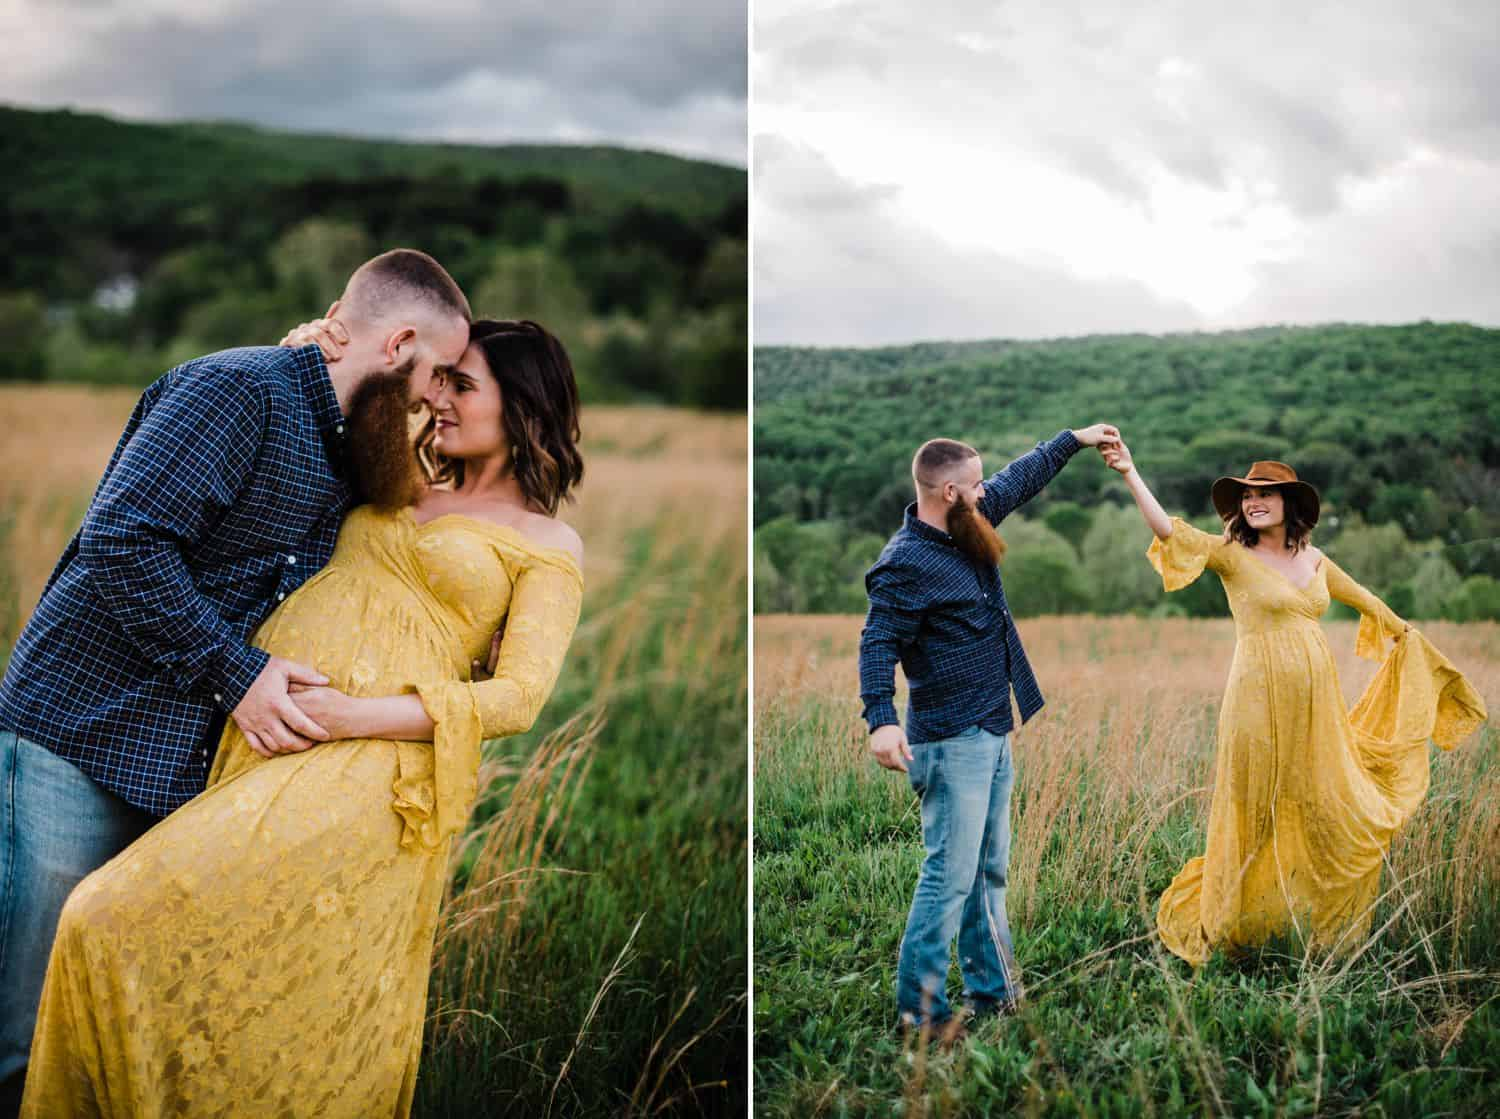 Maternity Poses: pregnant woman in a yellow dress dancing in a field with her husband in a plaid shirt